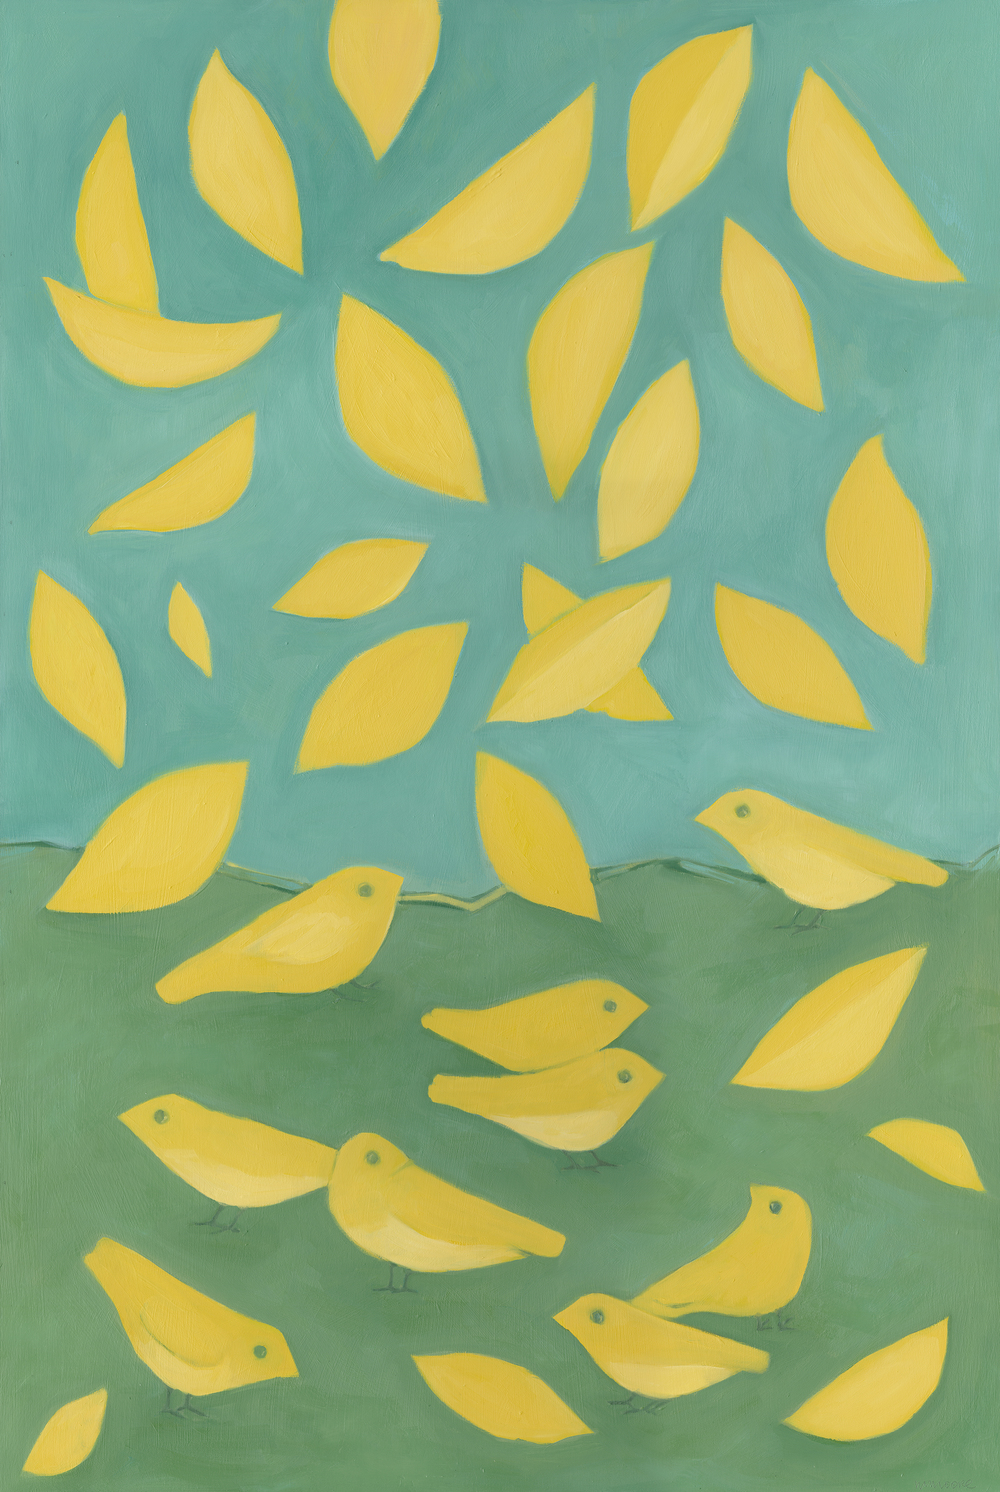 Yellow Birds & Leaves